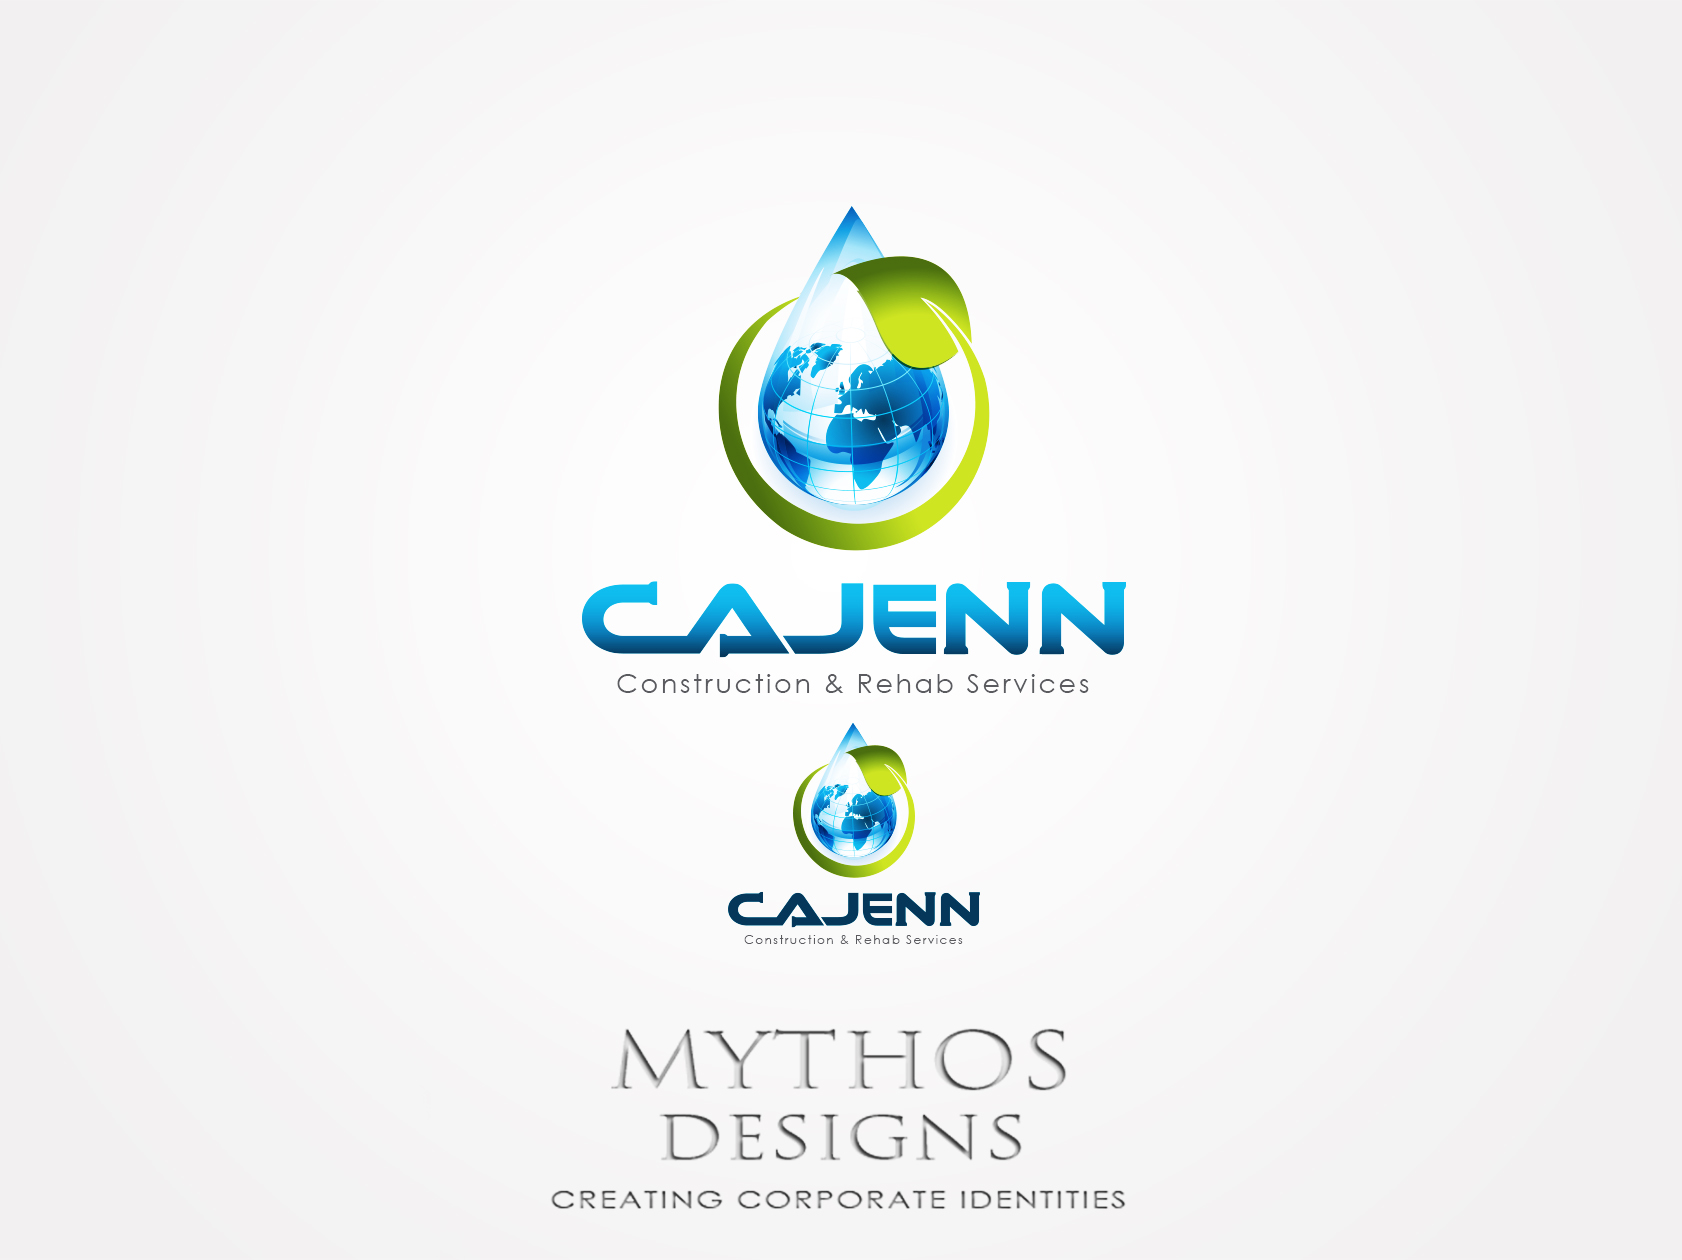 Logo Design by Mythos Designs - Entry No. 149 in the Logo Design Contest New Logo Design for CaJenn Construction & Rehab Services.